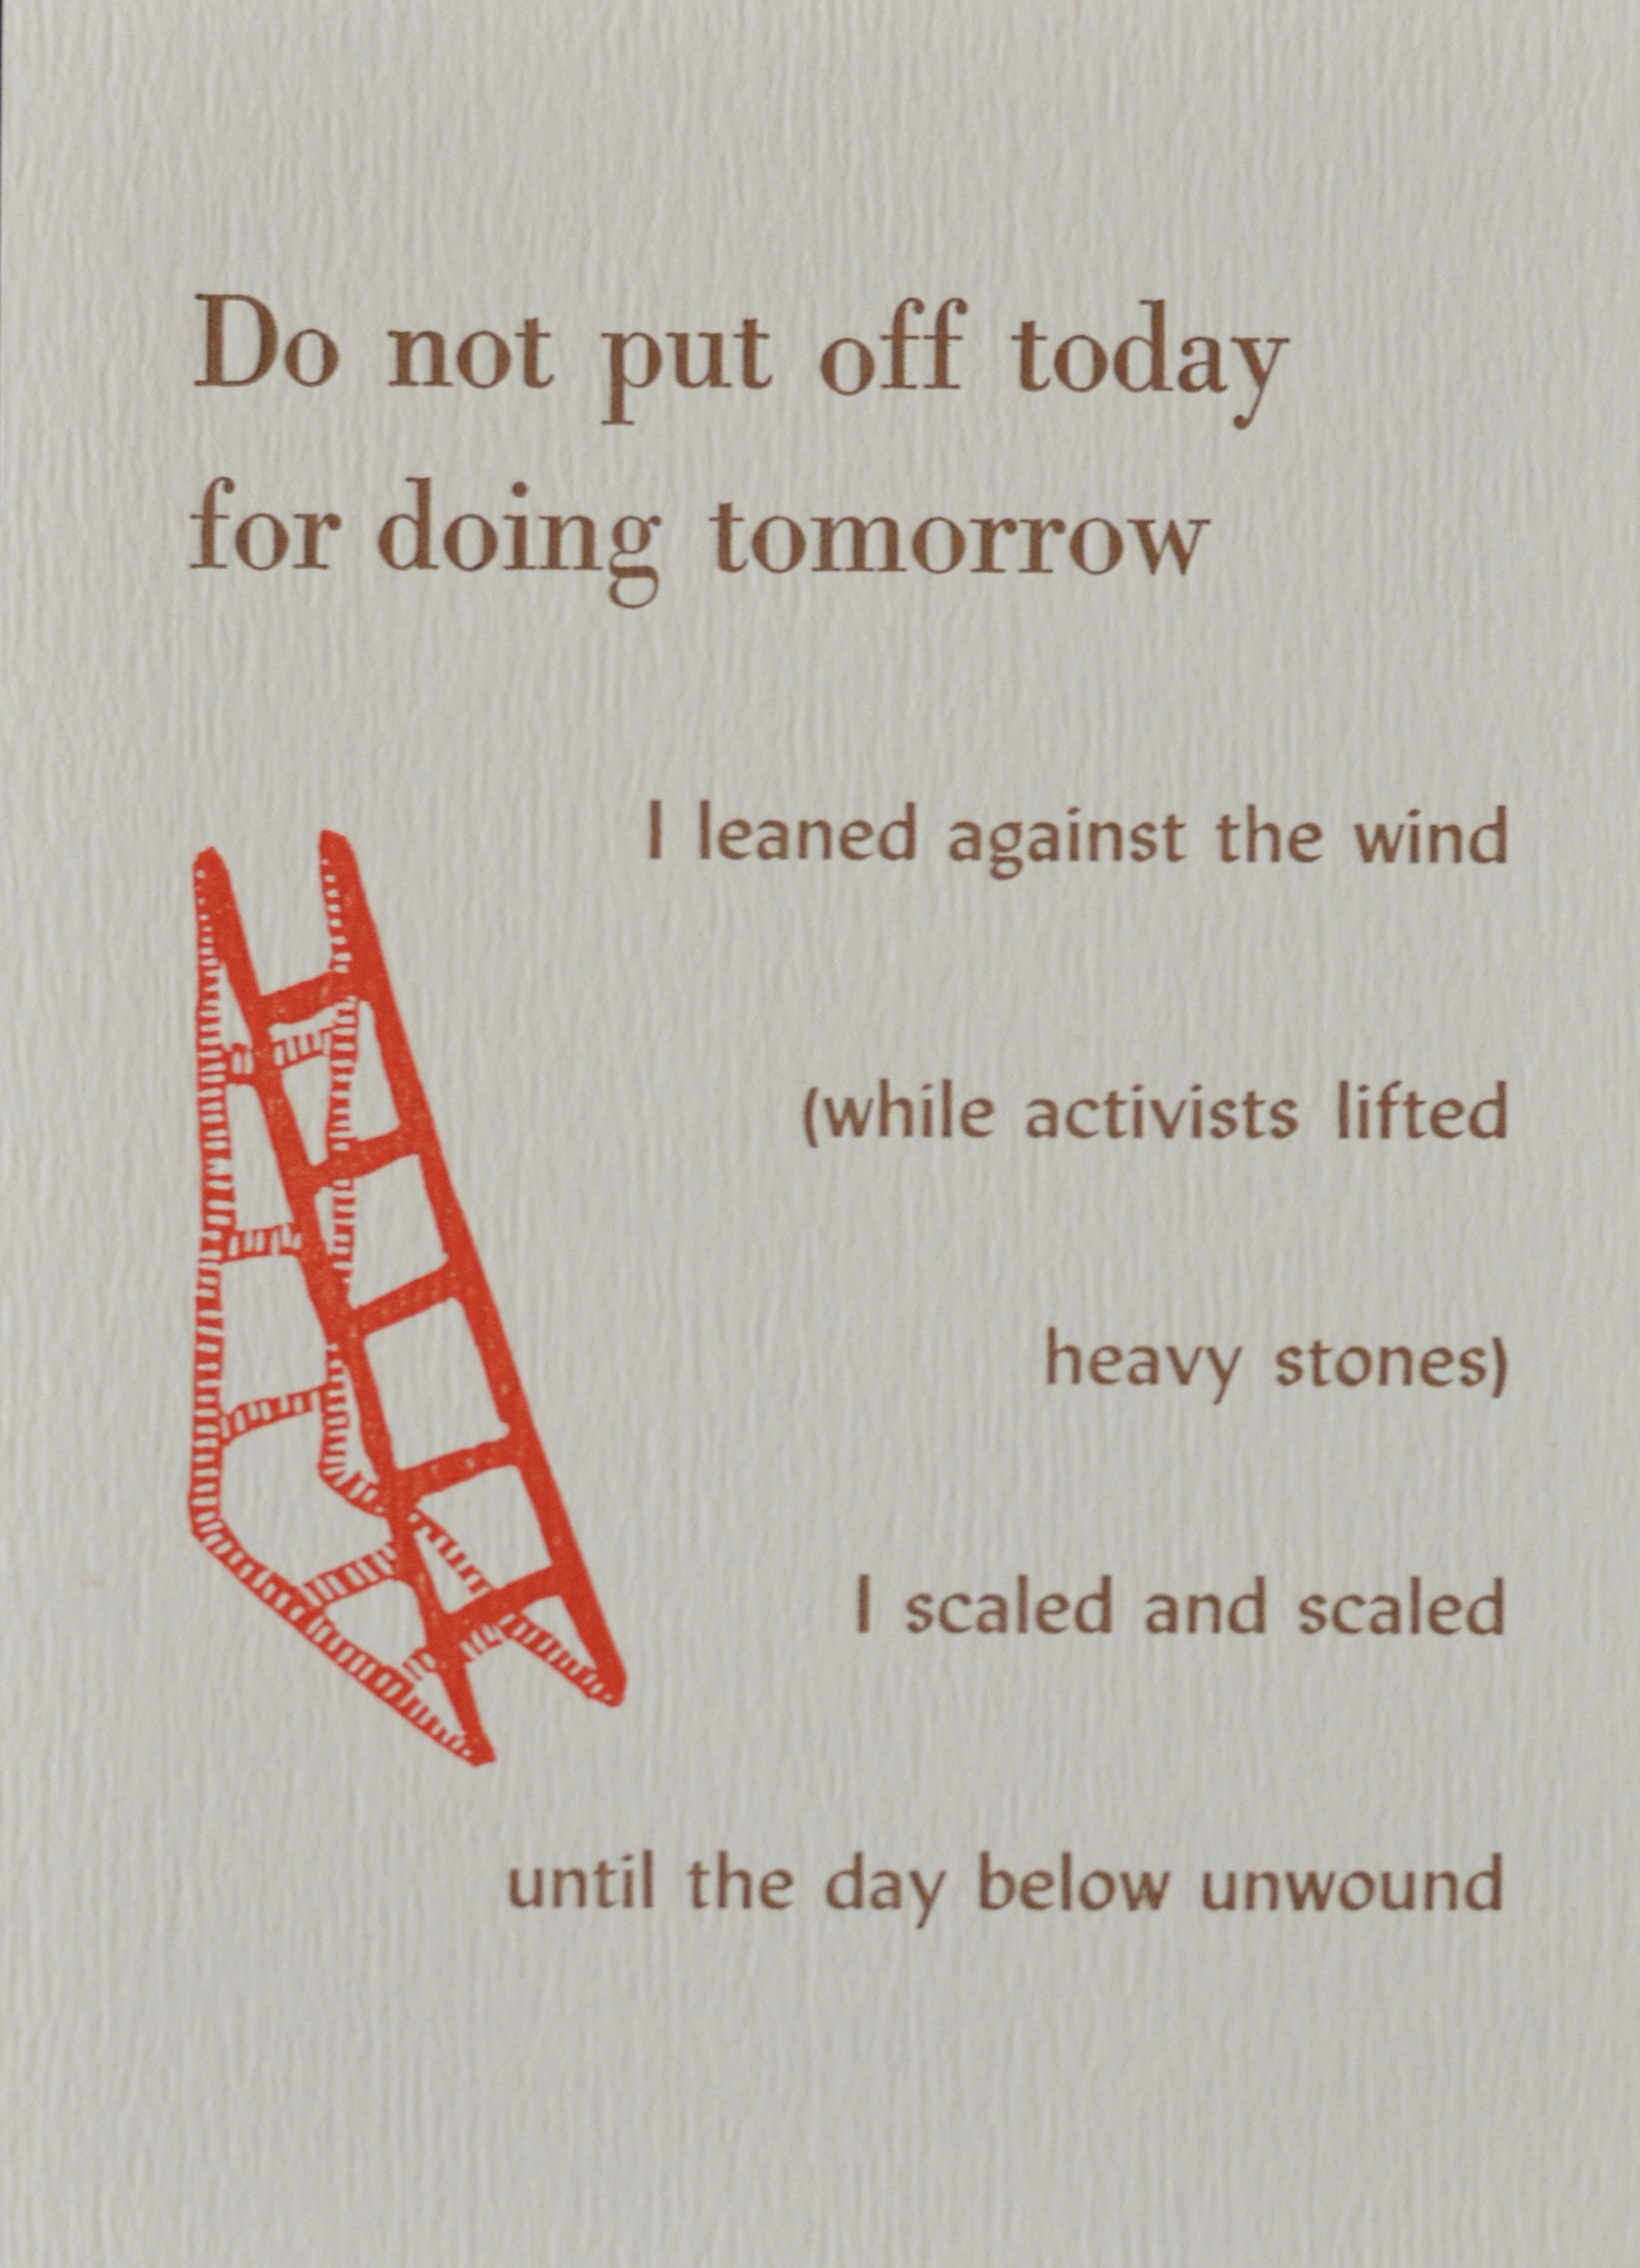 Do not put off today for doing tomorrow